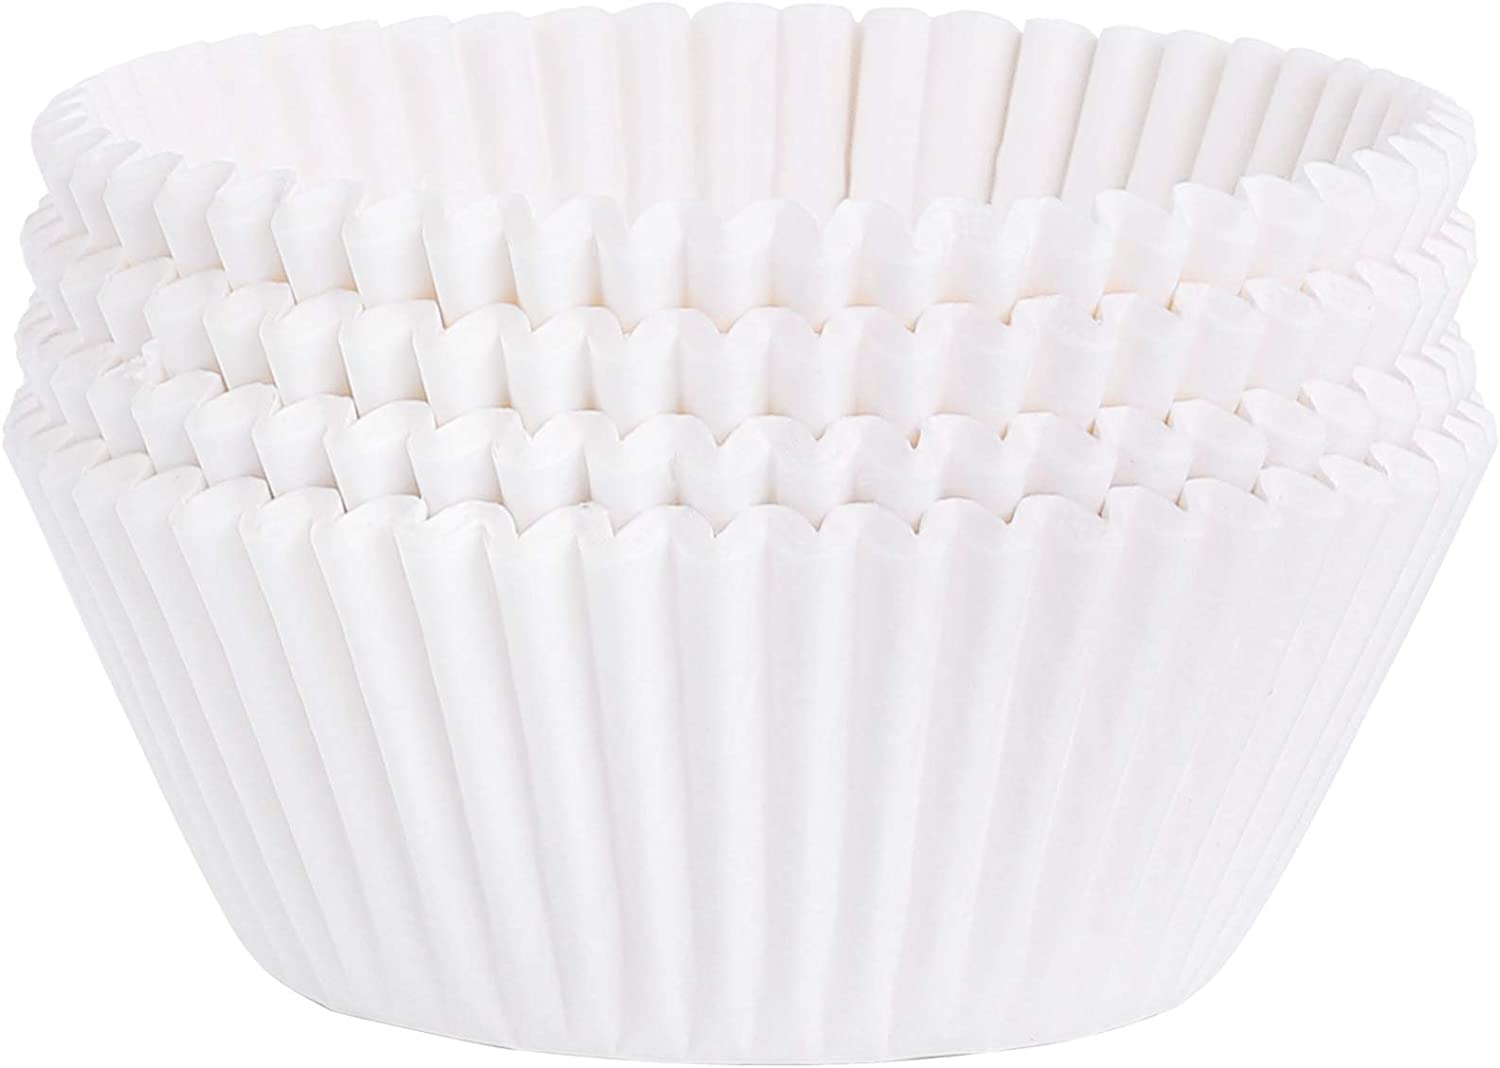 shopping URATOT Superlatite 100 Pieces White Cupcake Baking Wrappers Liners C